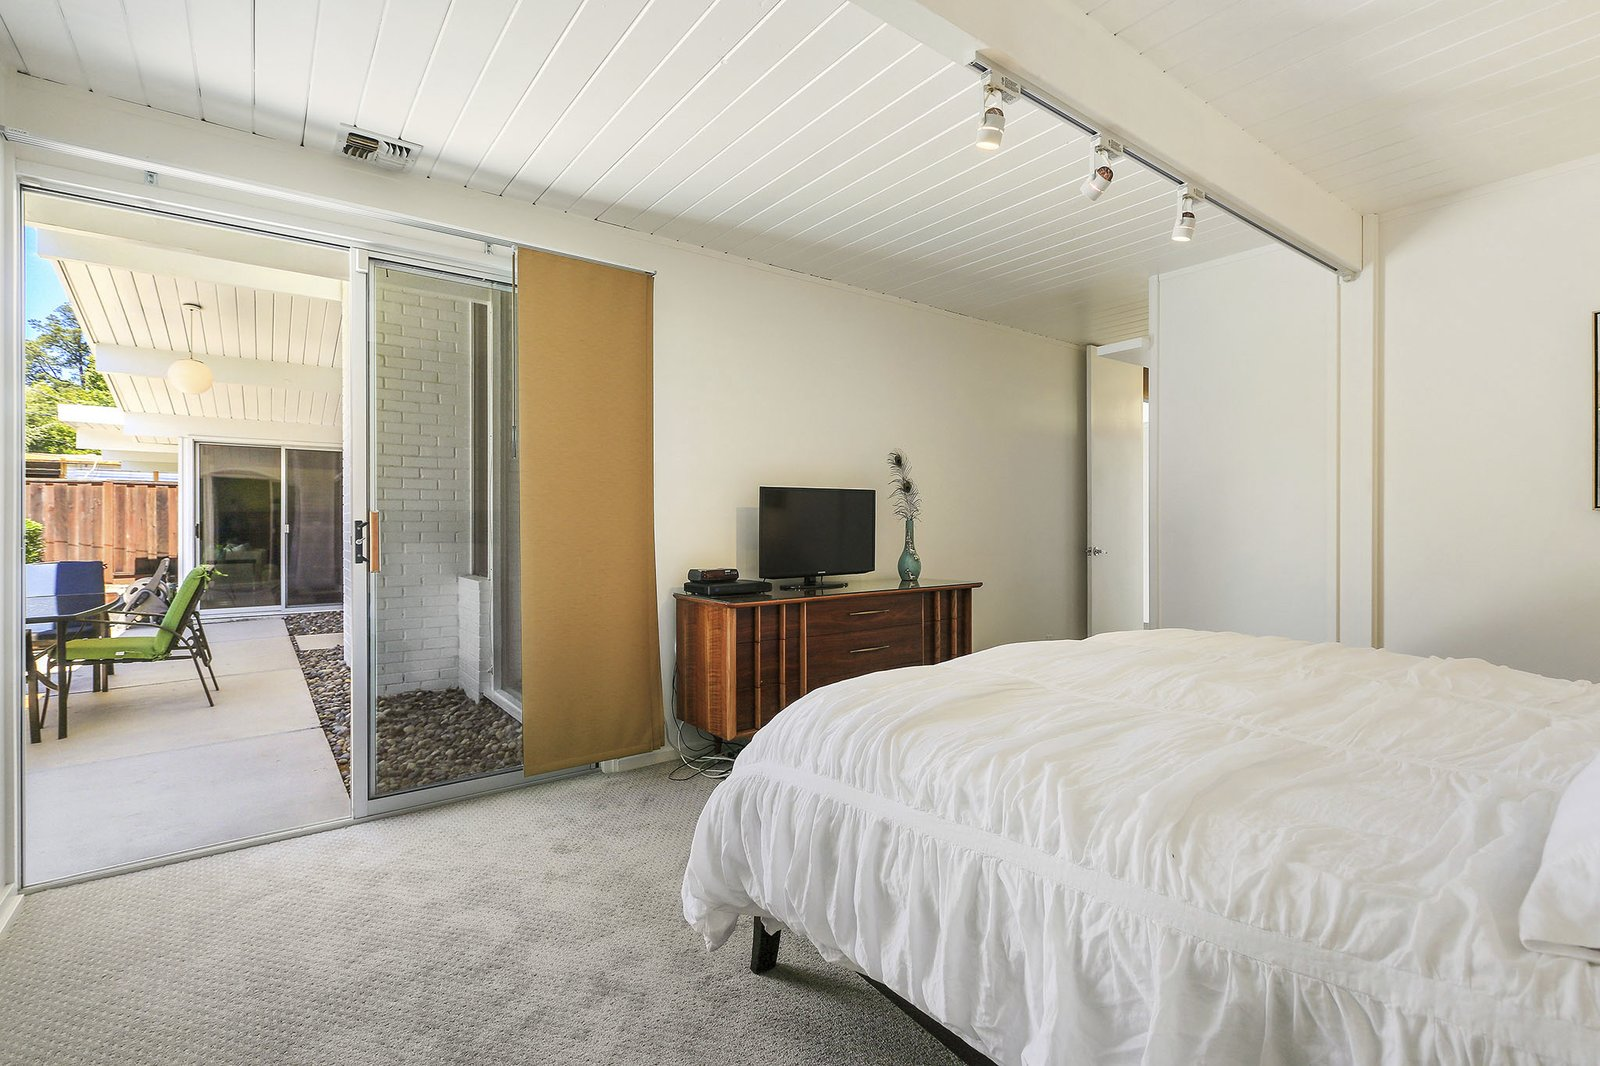 Bedroom, Dresser, Bed, Carpet, and Track The roomy master suite has an ensuite bathroom and outdoor access.  Best Bedroom Track Bed Photos from A Handsome East Bay Eichler Lists For $875K